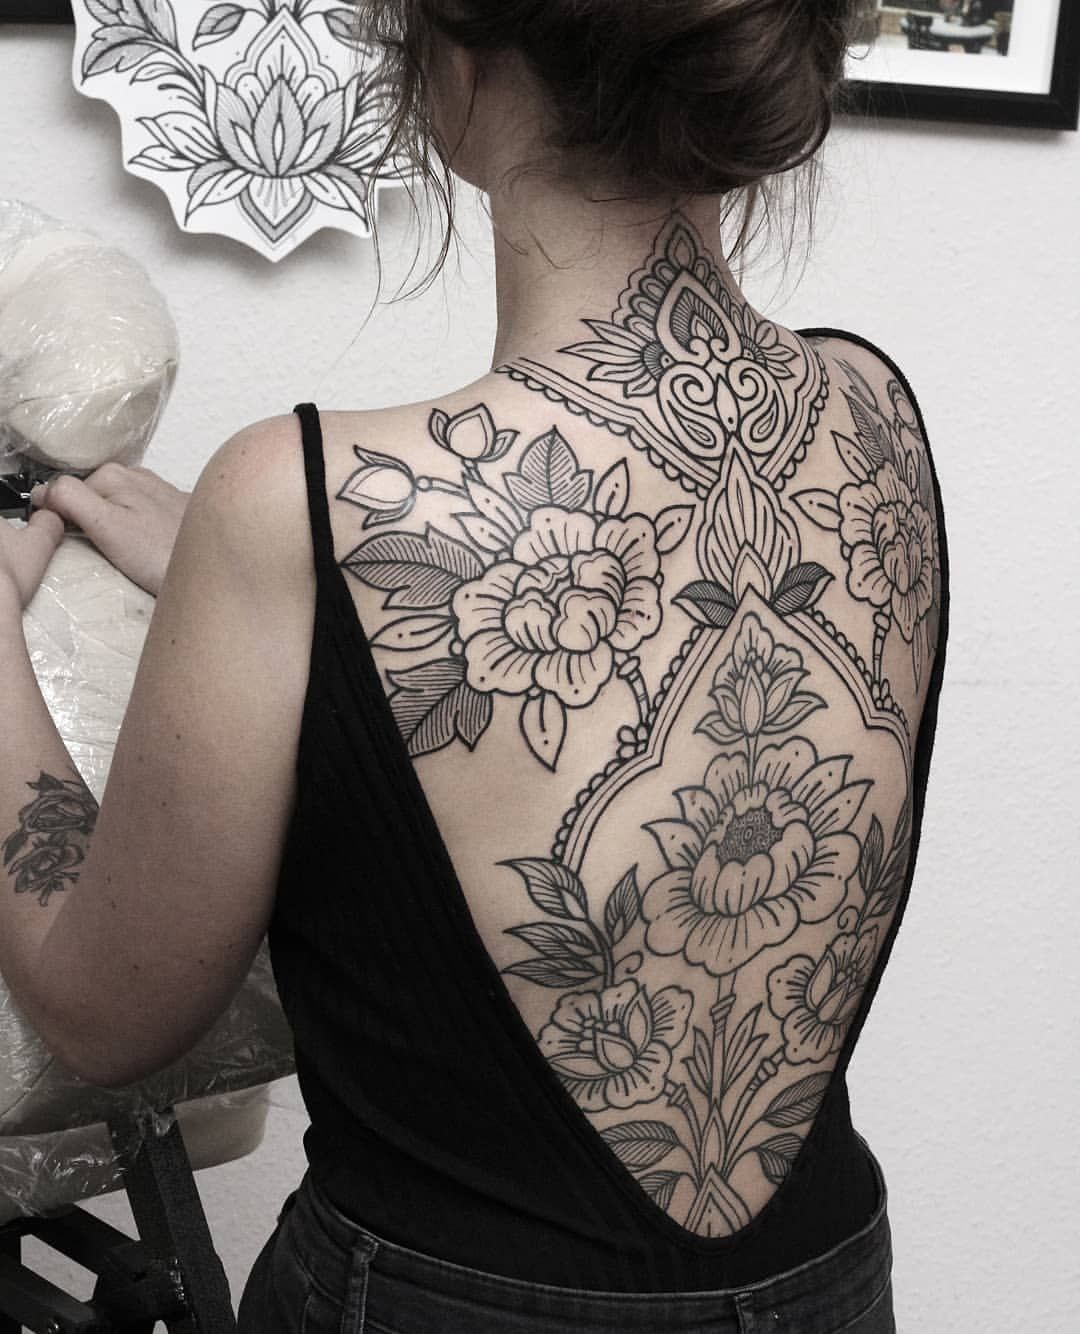 Only Lines Mandalas And Flowers Inspiration For The Arm White